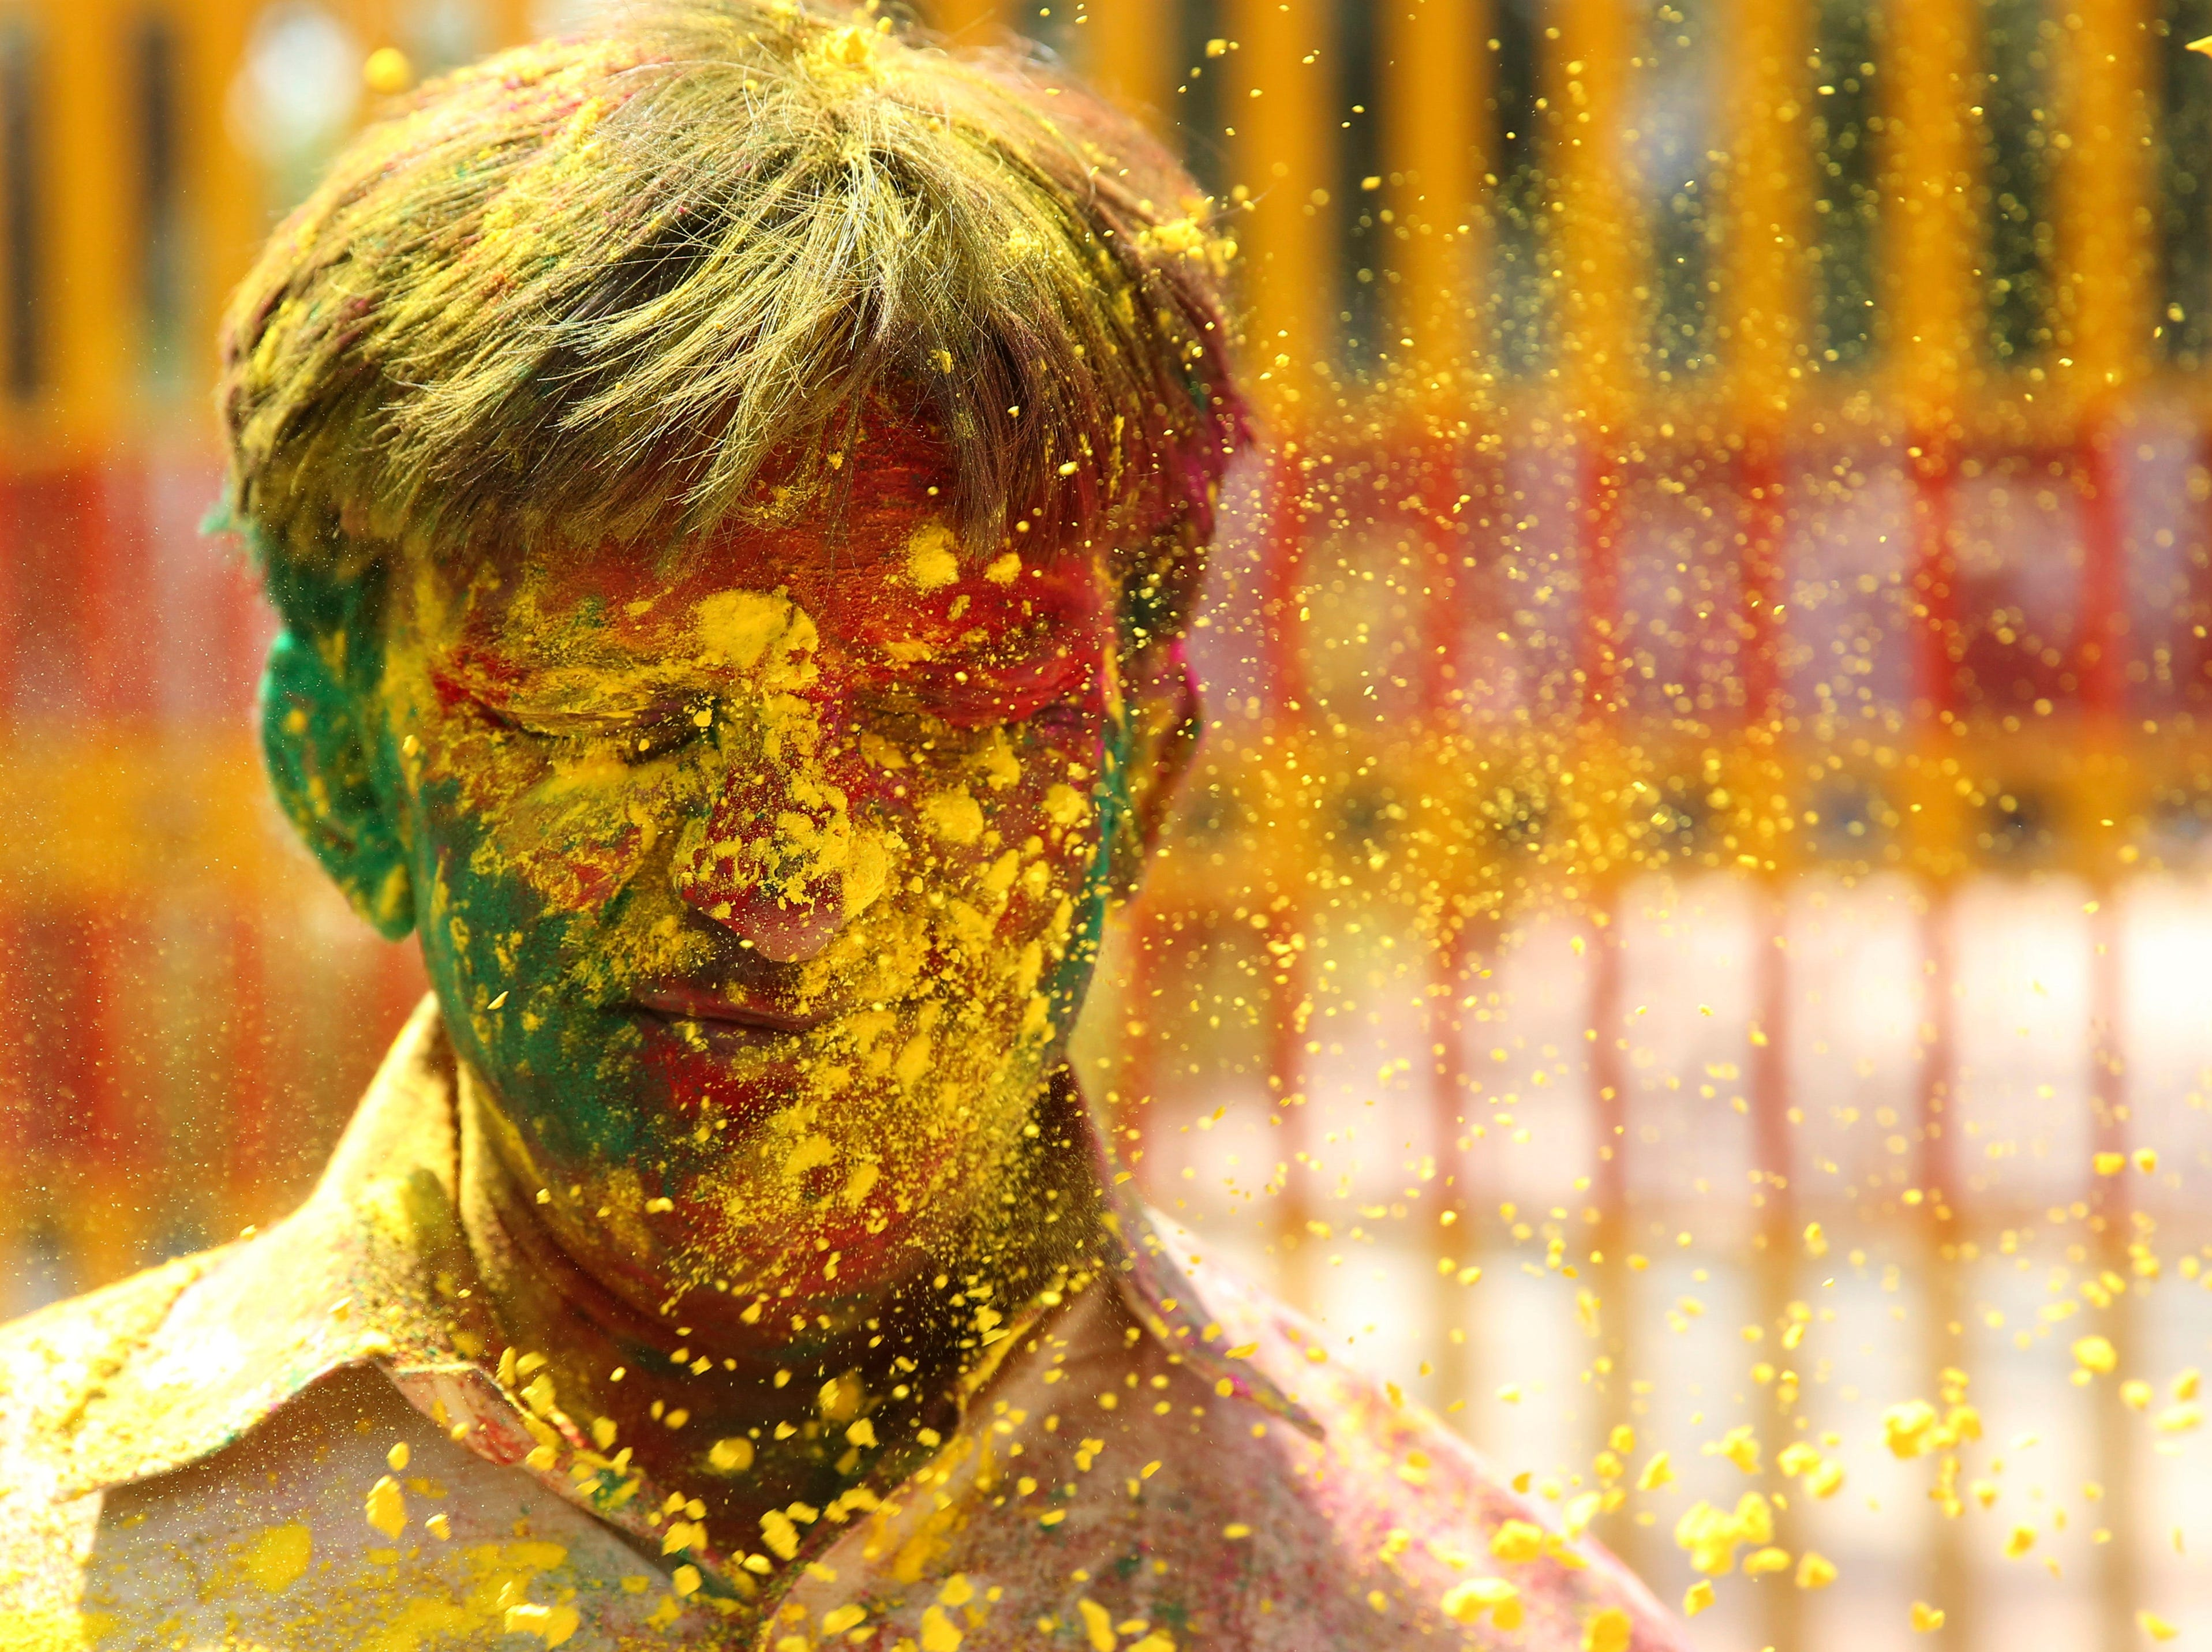 An Indian man has colored powder thrown on his face during celebrations marking Holi, the Hindu festival of colors, in Allahabad, India, Wednesday, March 20, 2019. Holi also marks the advent of spring season.